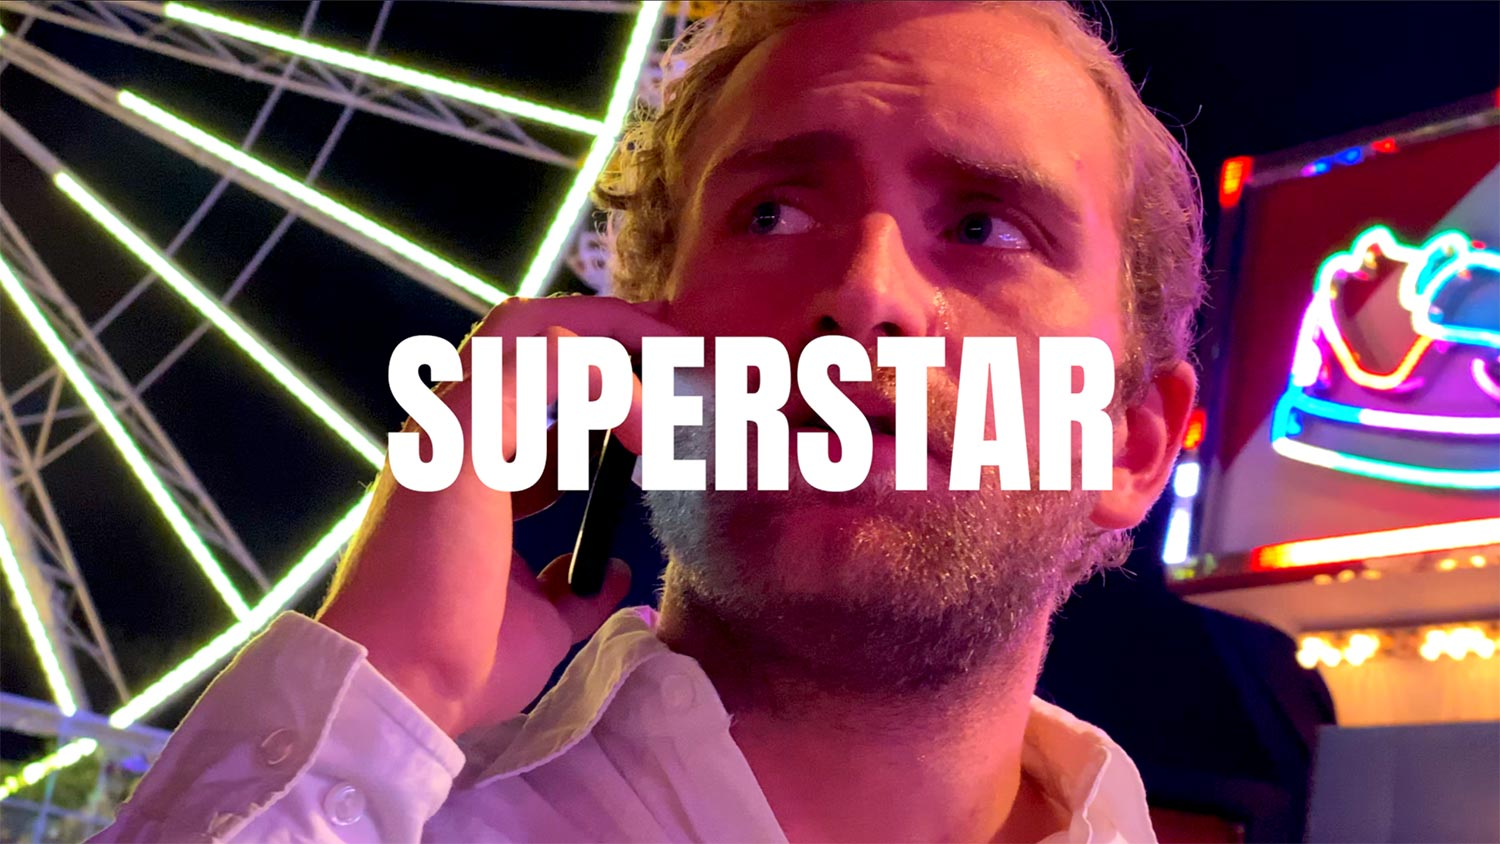 Superstar Film Thumbnail